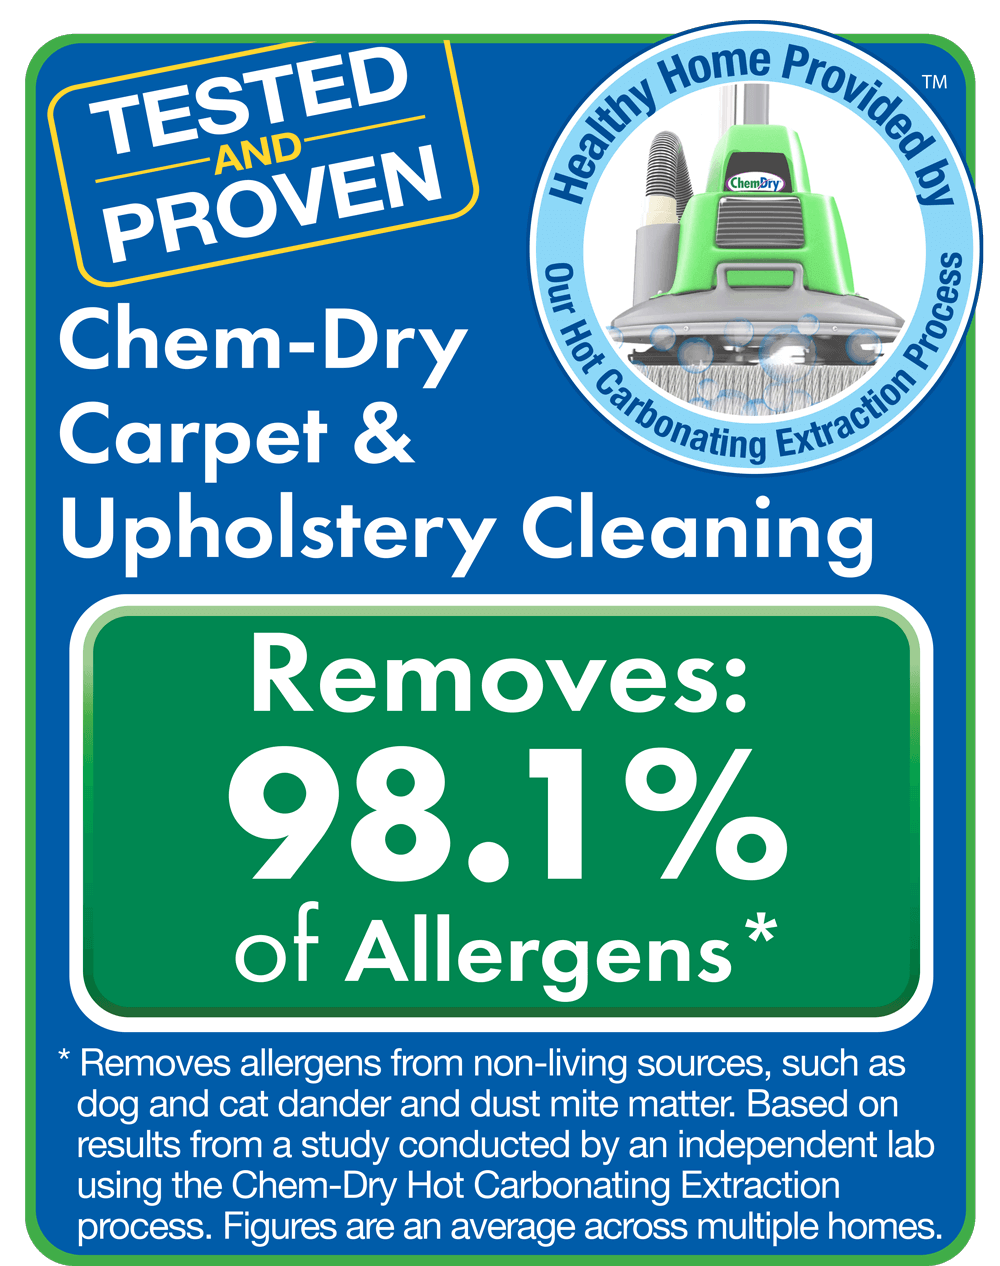 Chem-Dry removes allergens from carpets